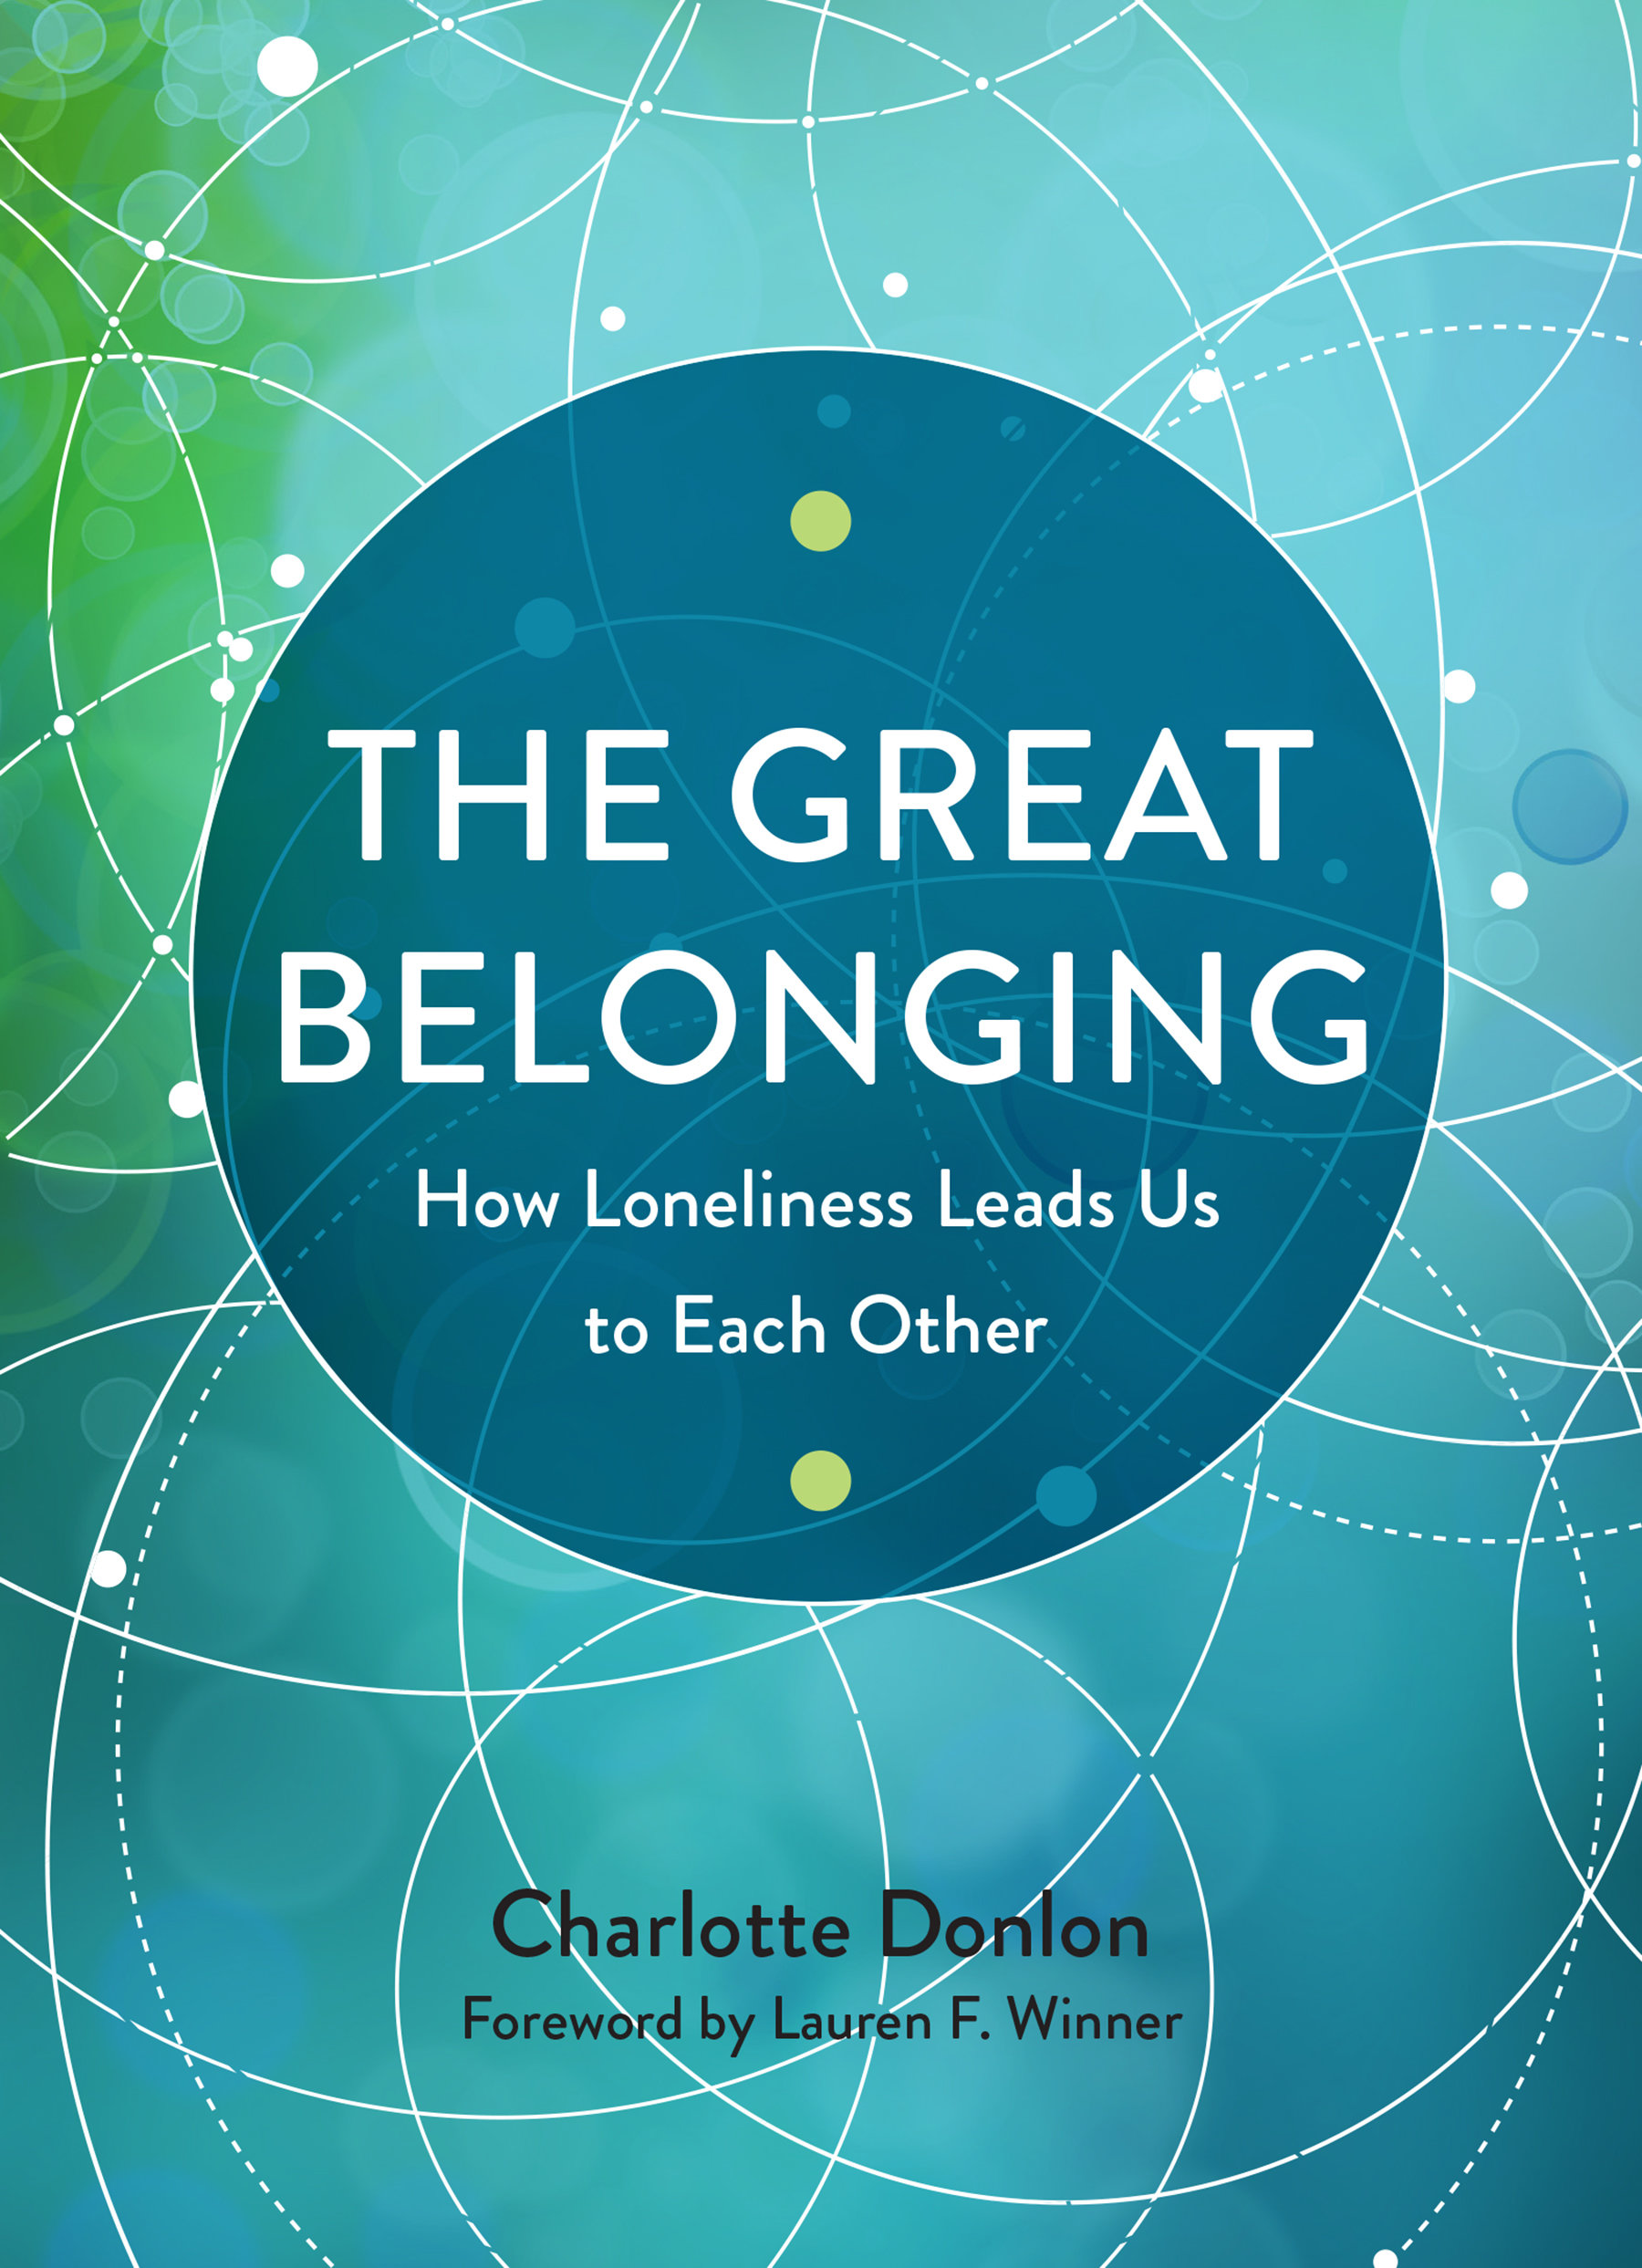 The Great Belonging: How Loneliness Leads Us to Each Other